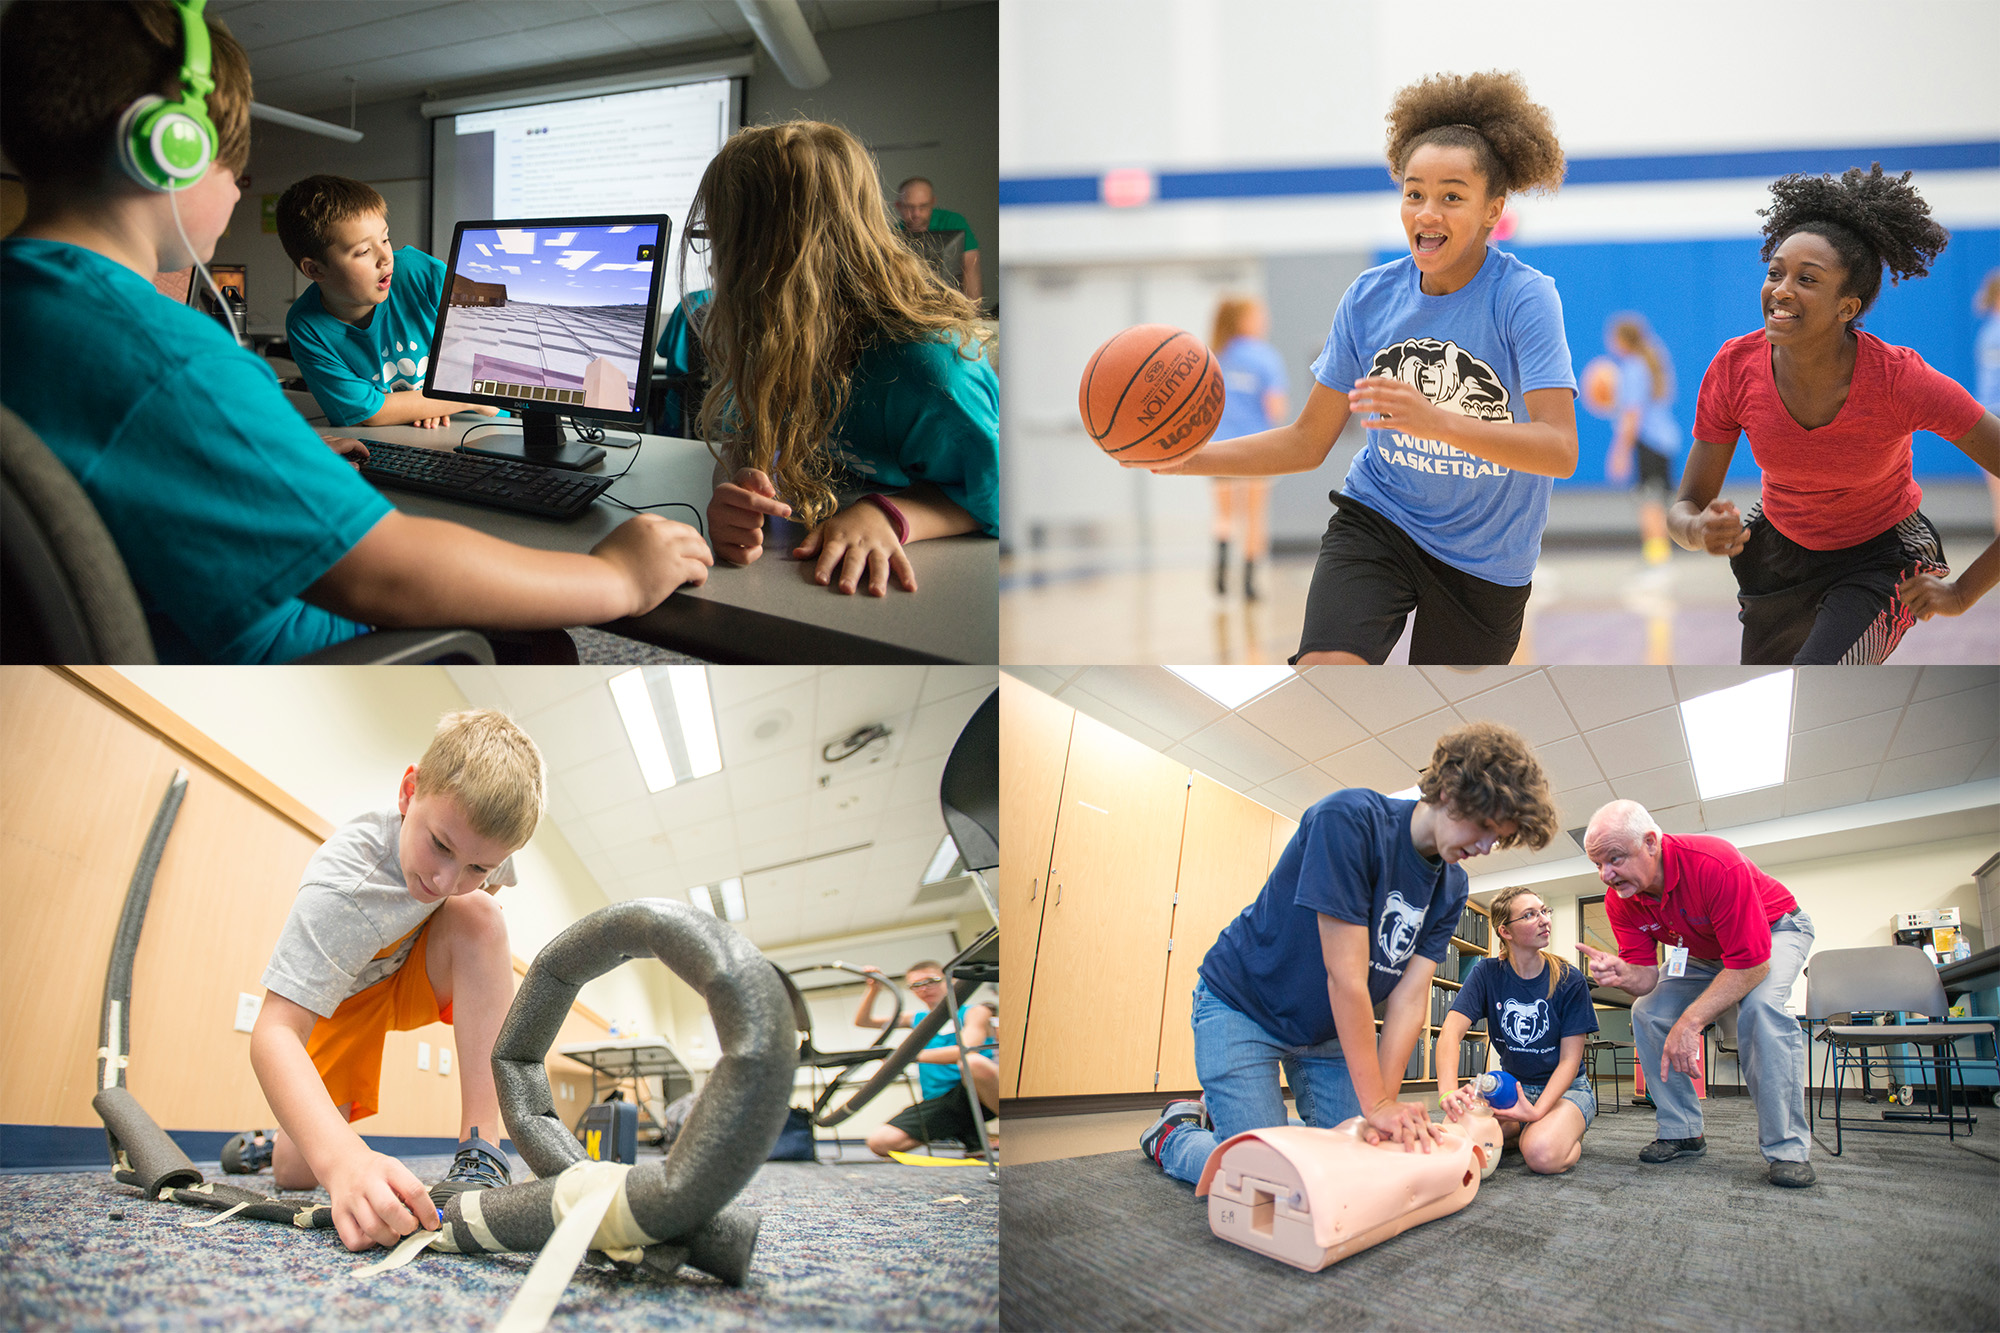 Youth summer campers participate in various camp activities.